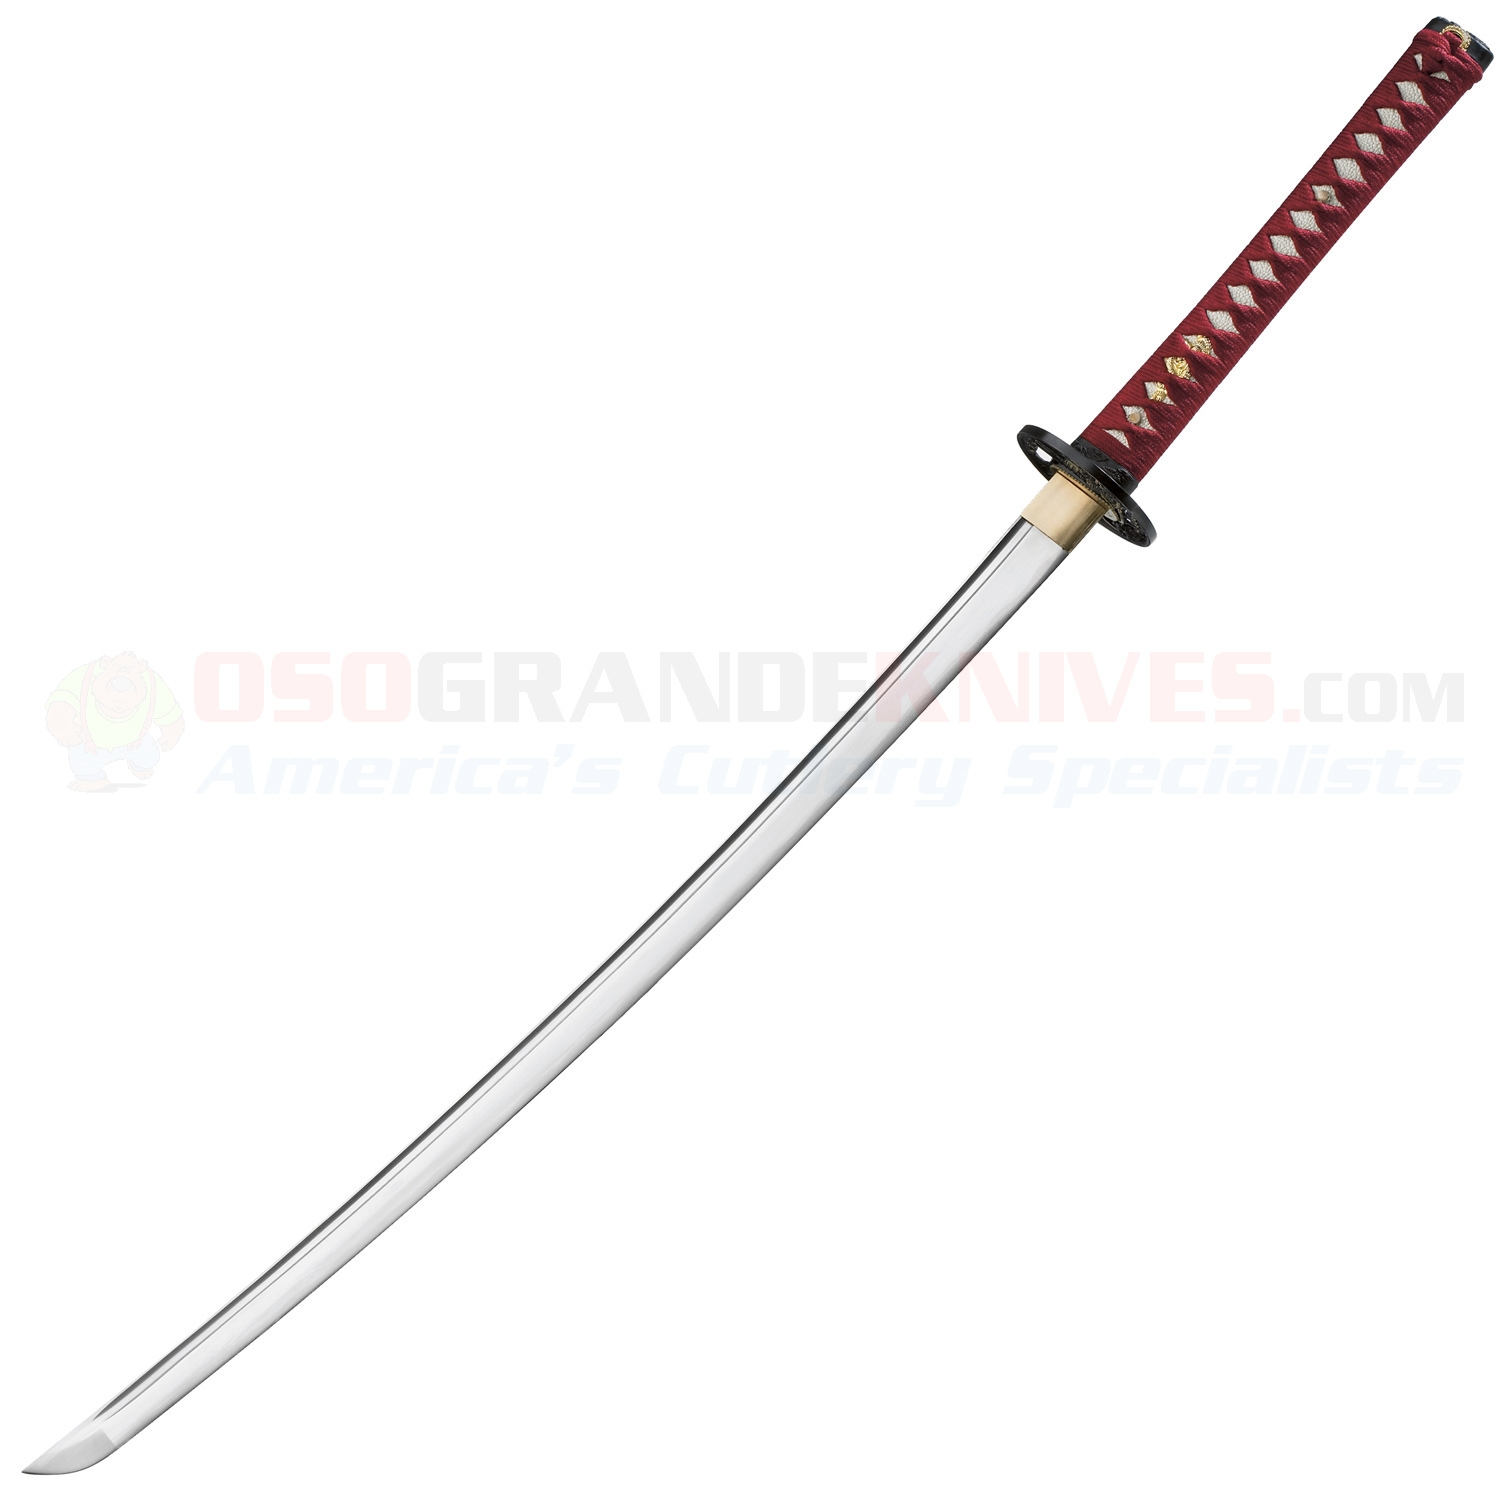 Boker Magnum Red Samurai Sword, 05ZS579 | OsoGrandeKnives